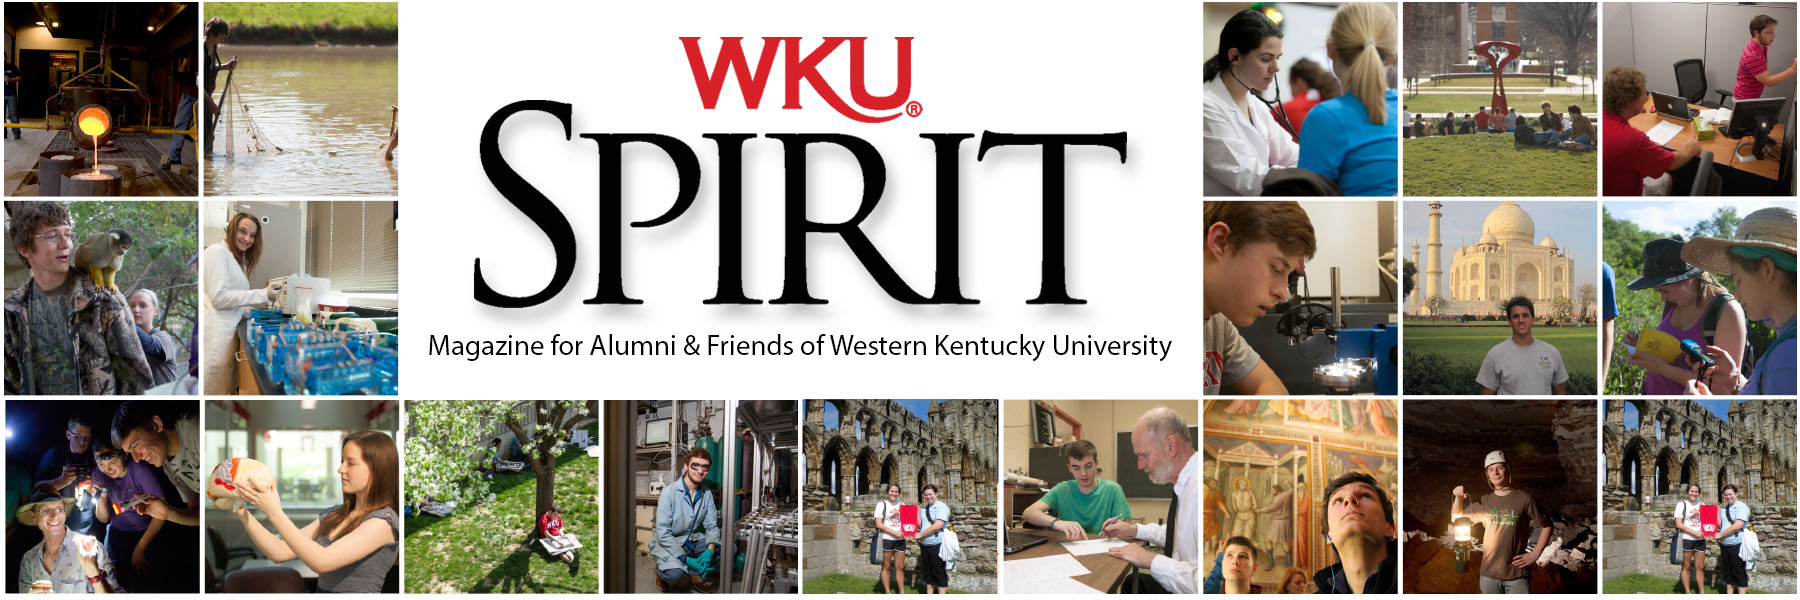 WKU SPIRIT Summer 2016 Issue Now Available Online